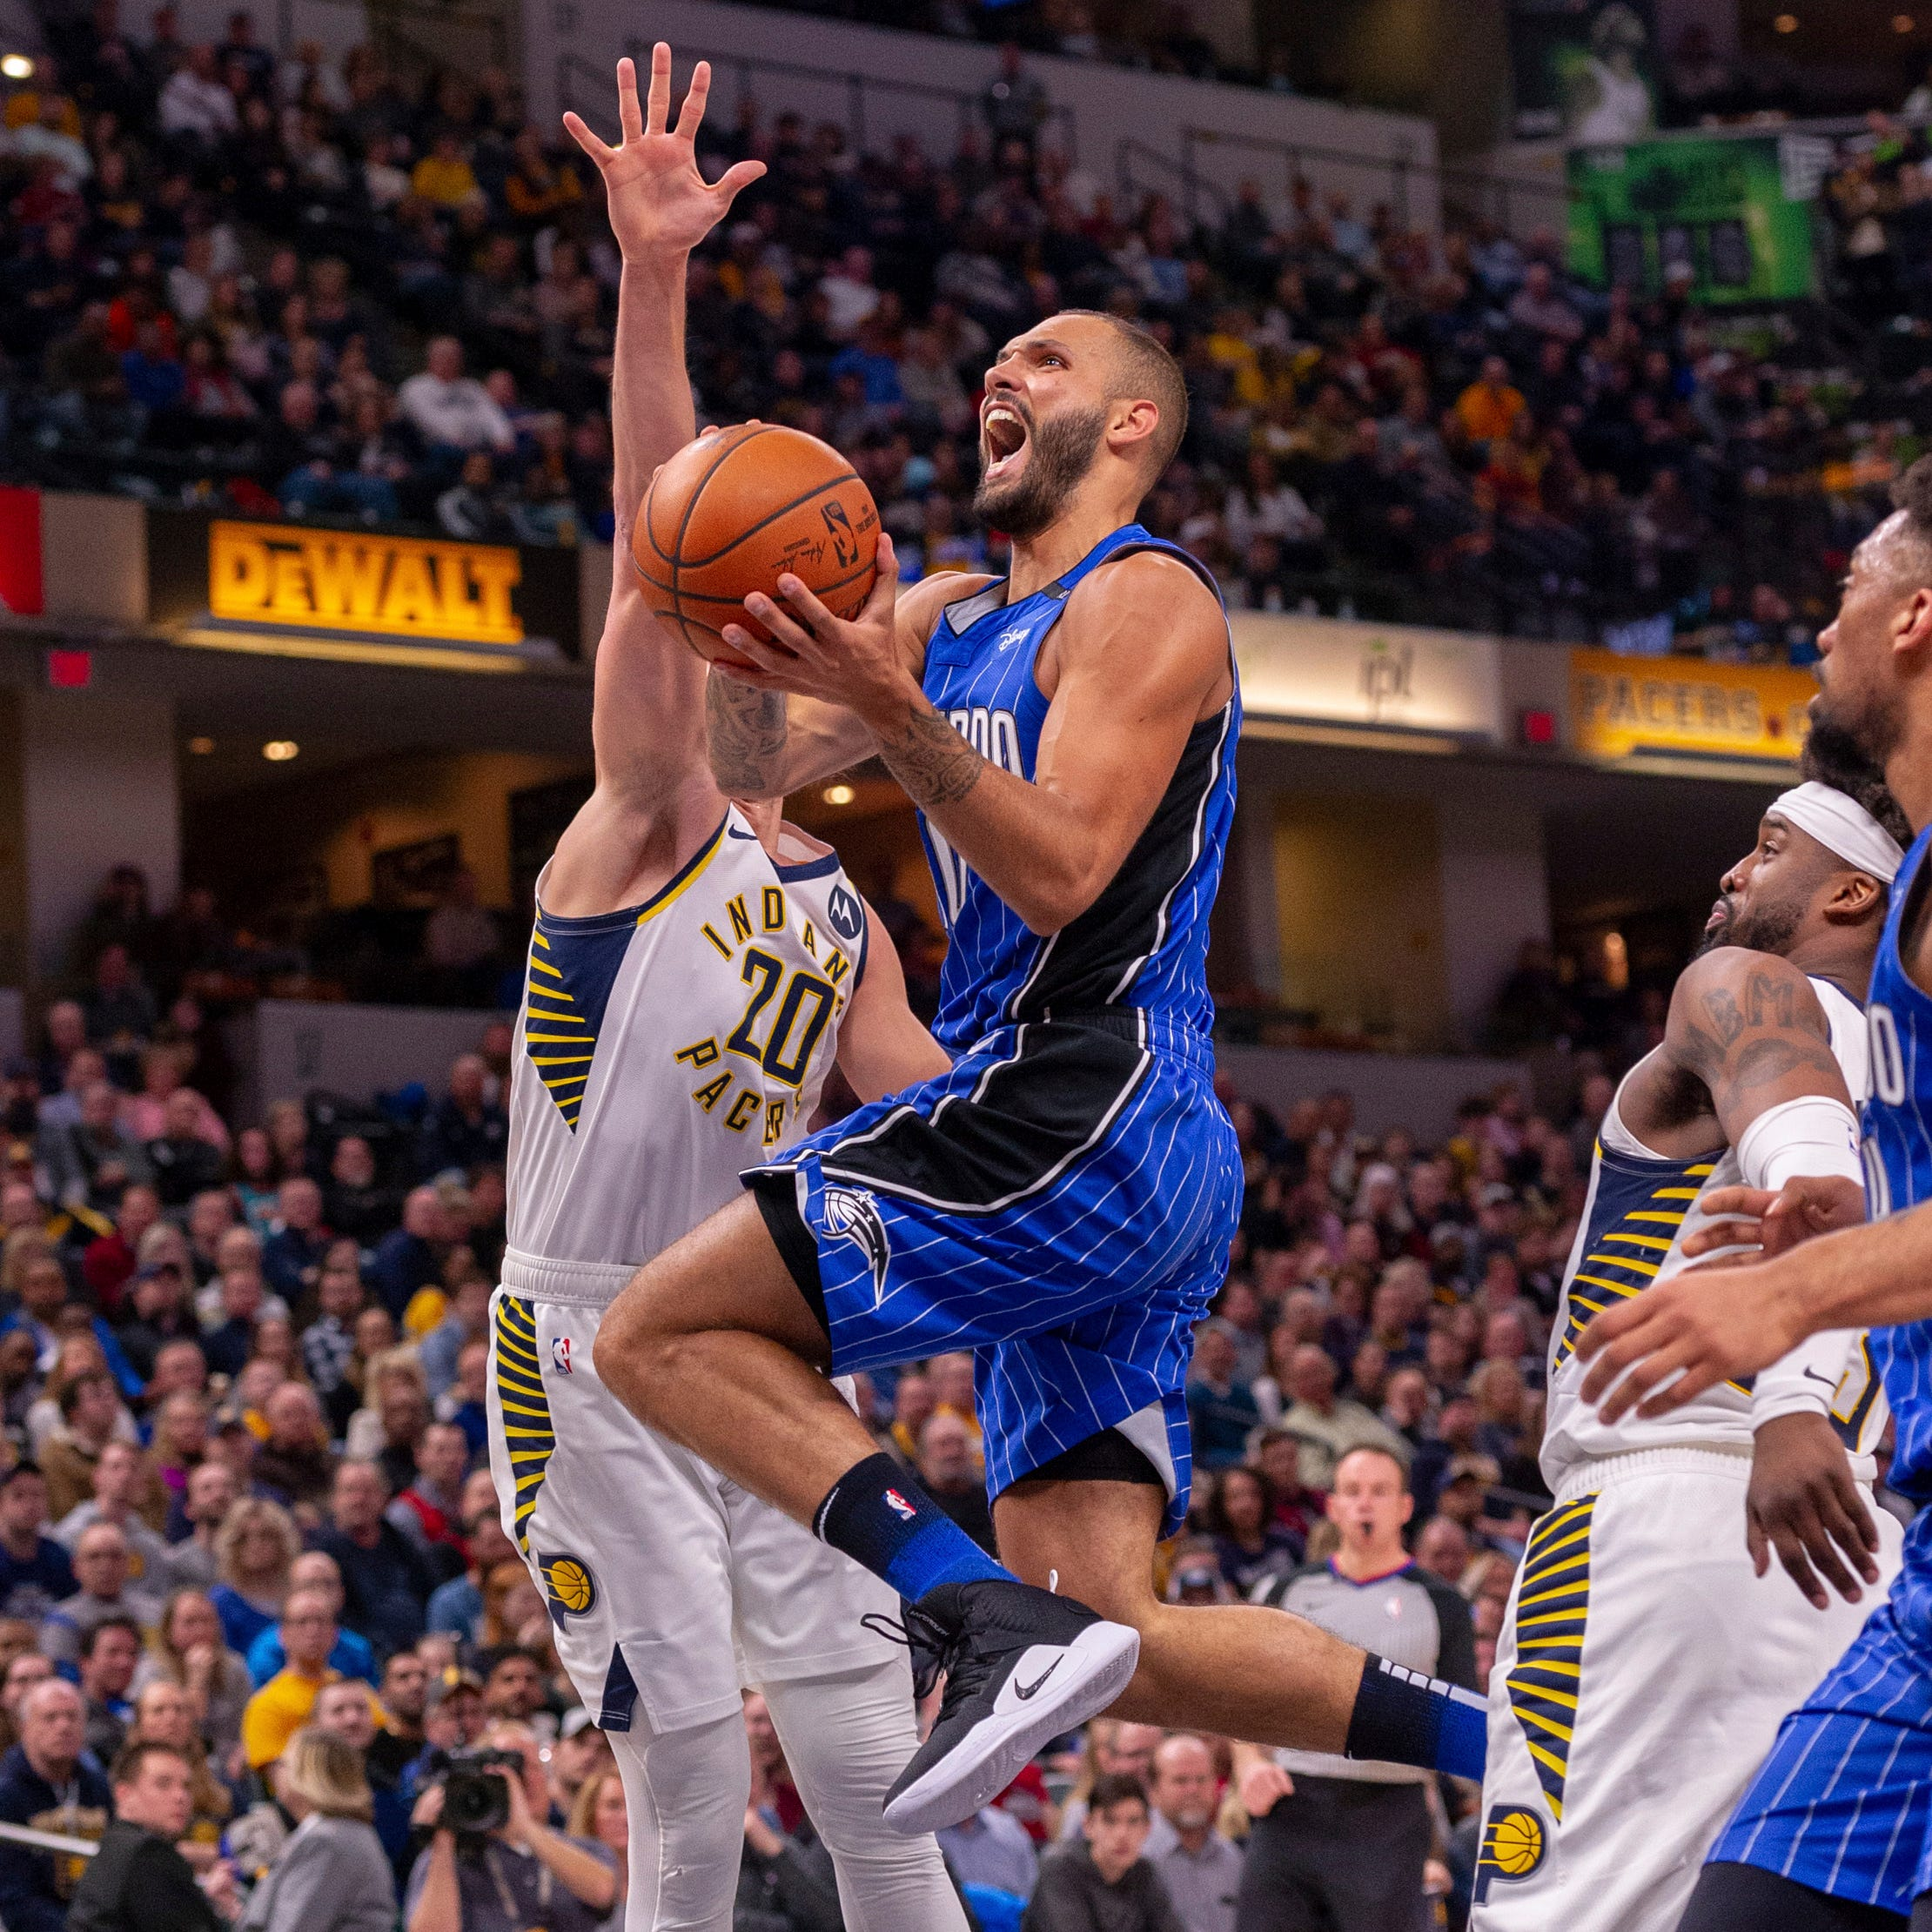 Being 'drunk on emotions' works against Pacers down stretch in loss to Magic